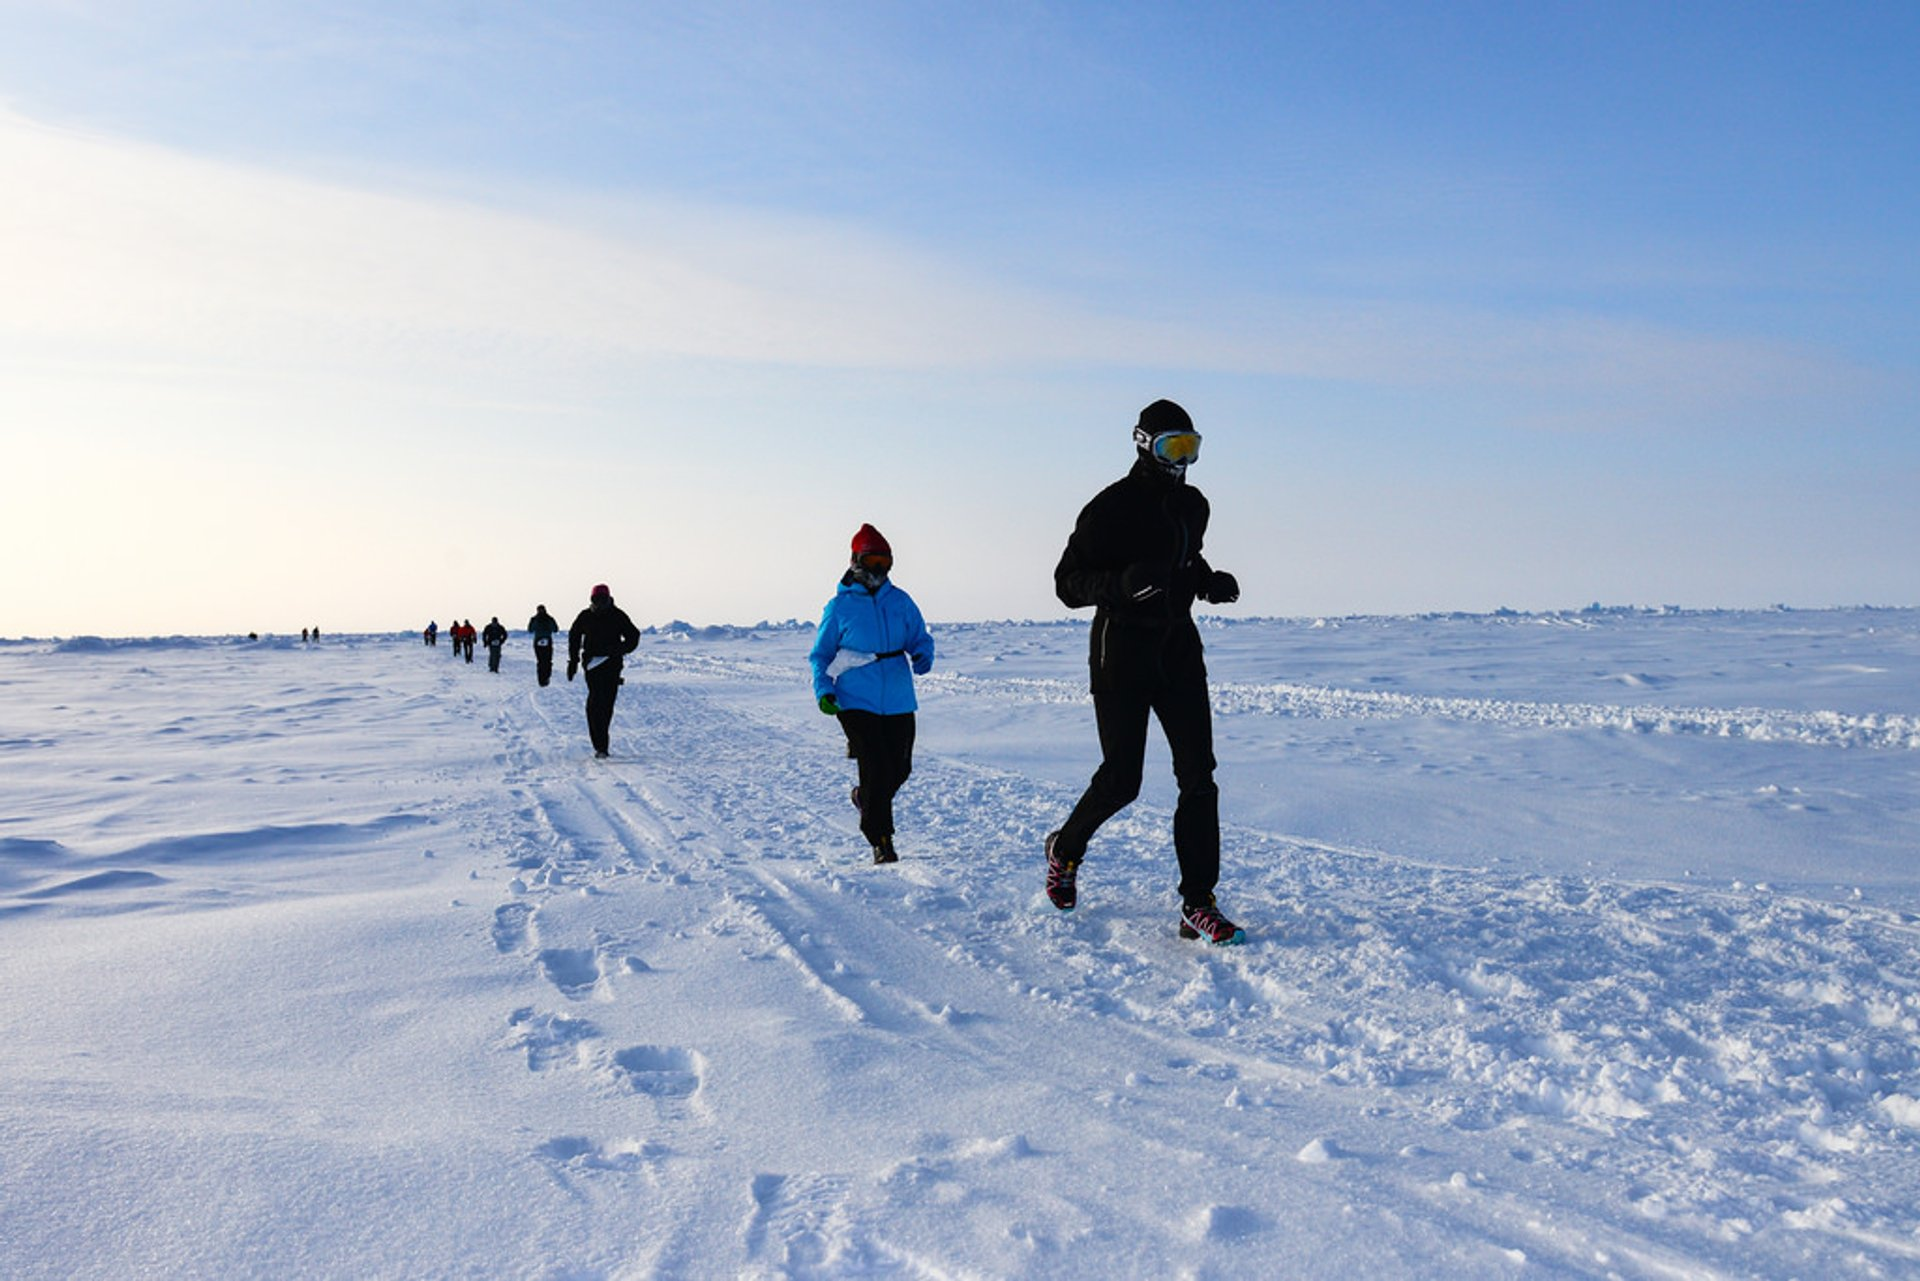 North Pole Marathon in Svalbard 2020 - Best Time